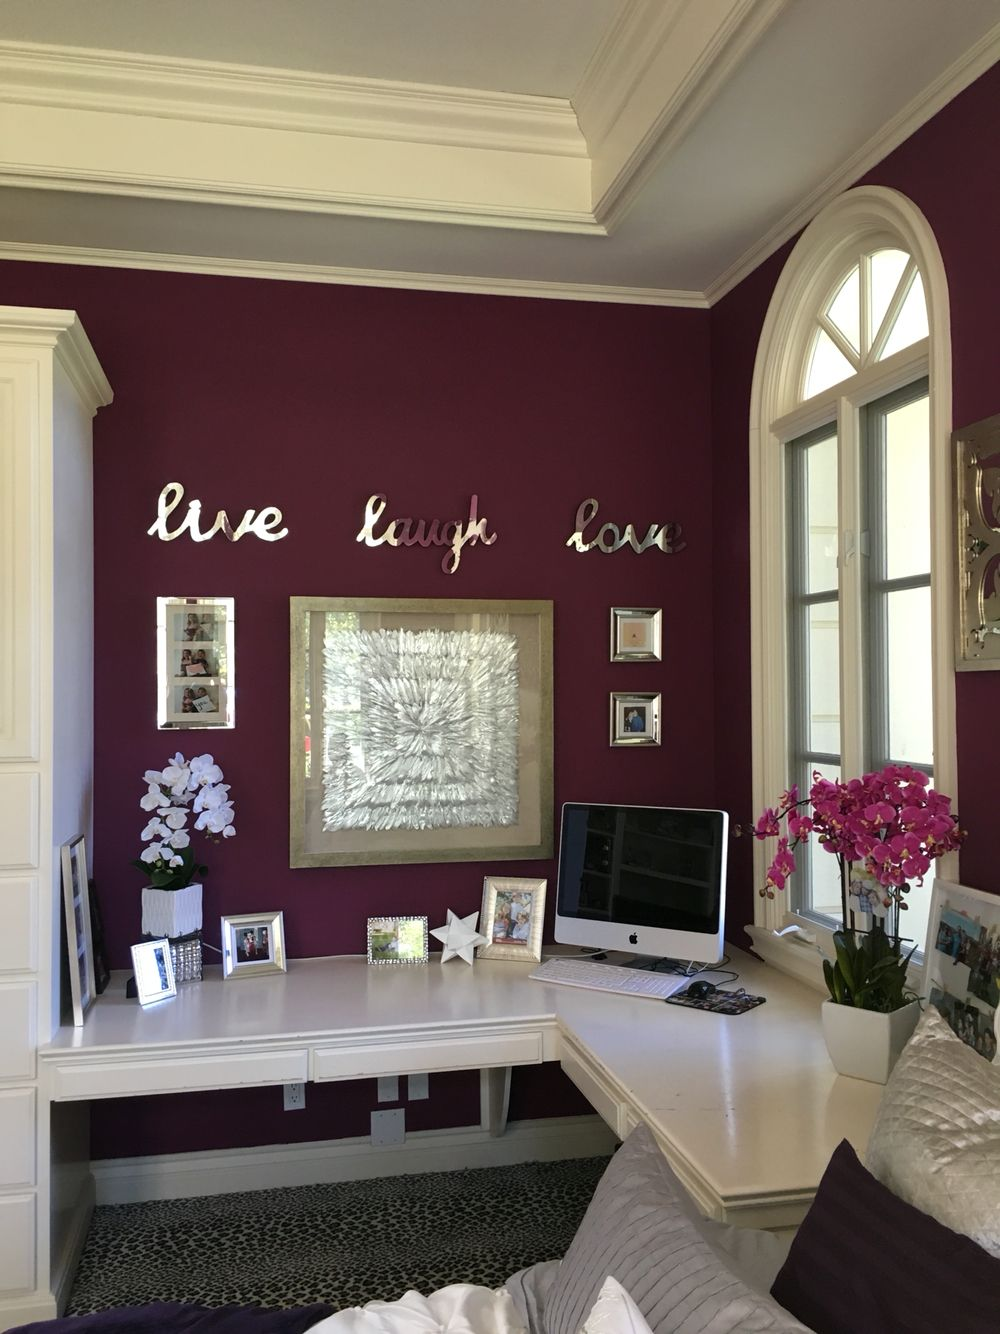 home office guest room. Home Office Space And Guest Room. Purple, Silver, White. Luxury Room